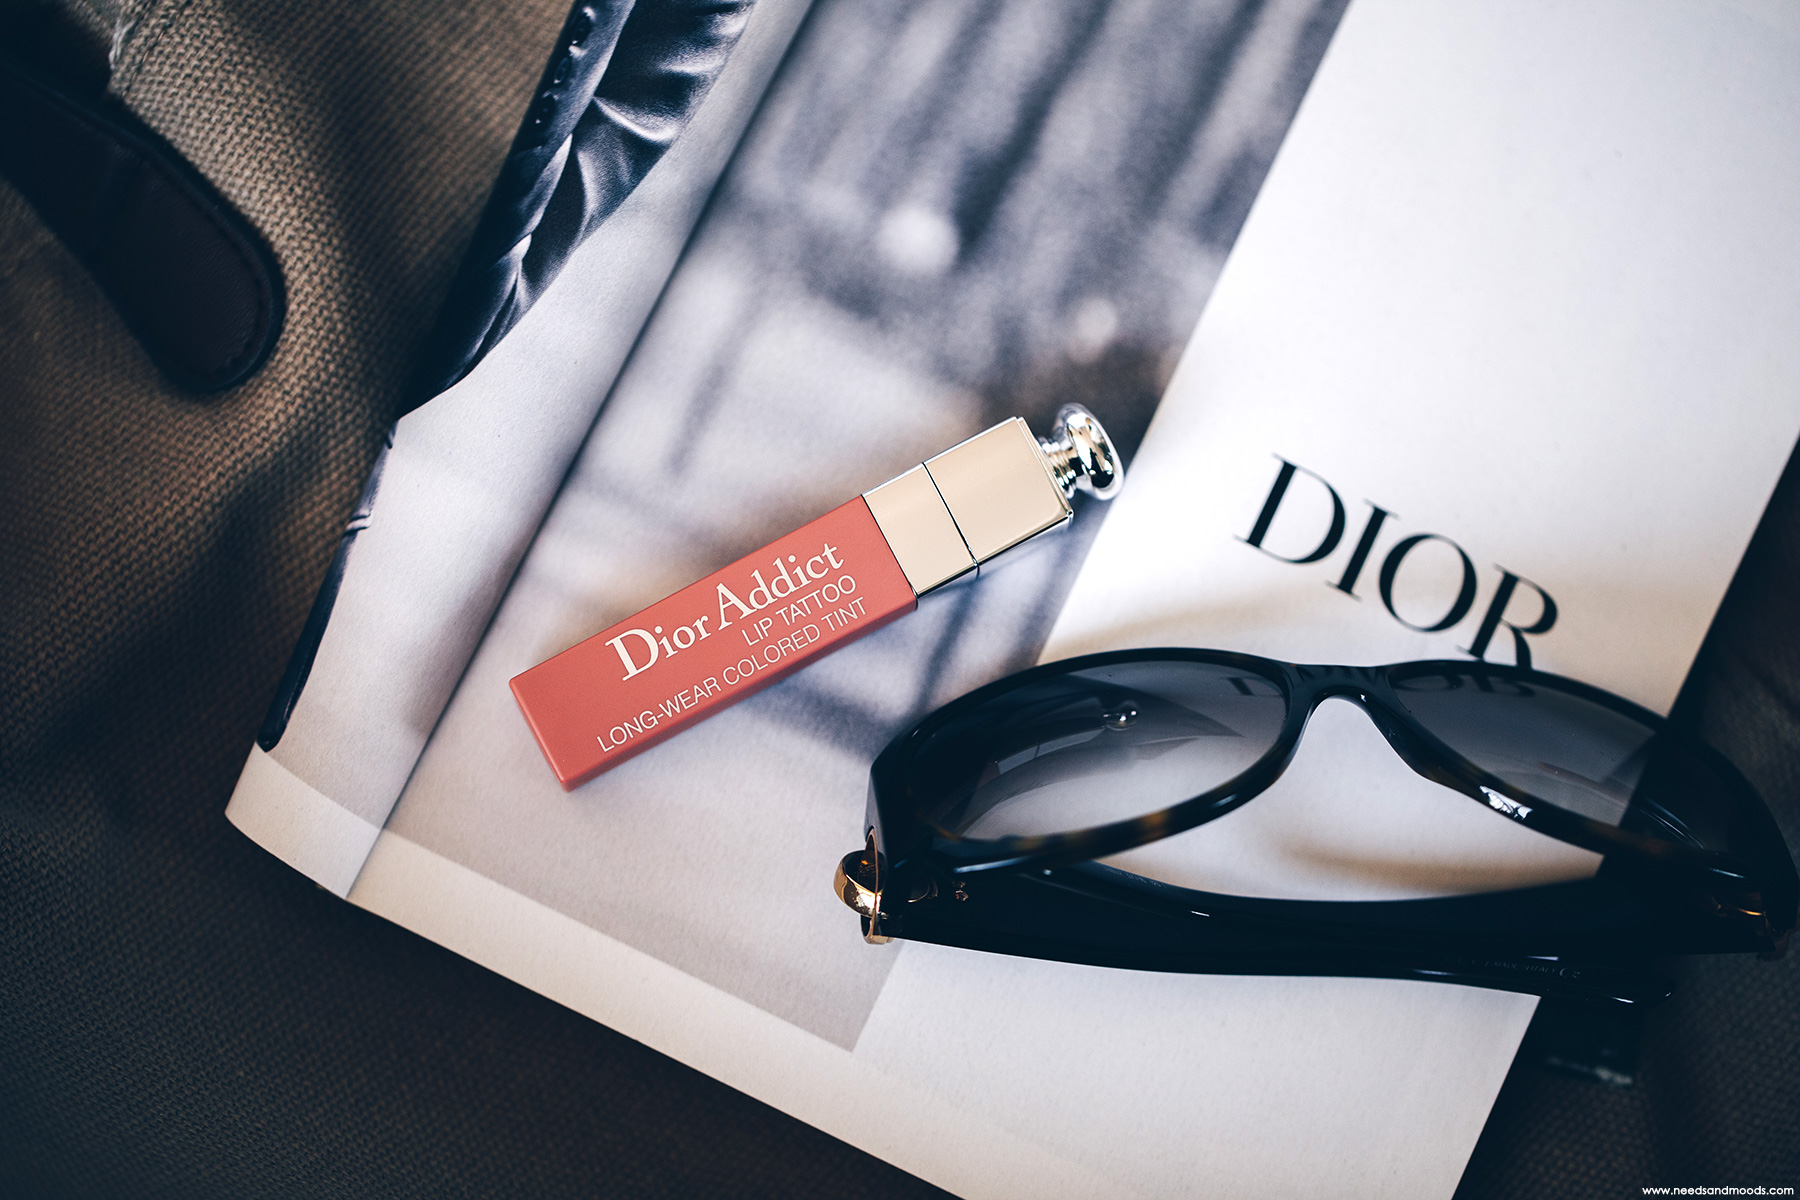 dior addict lip tattoo 321 natural rose avis